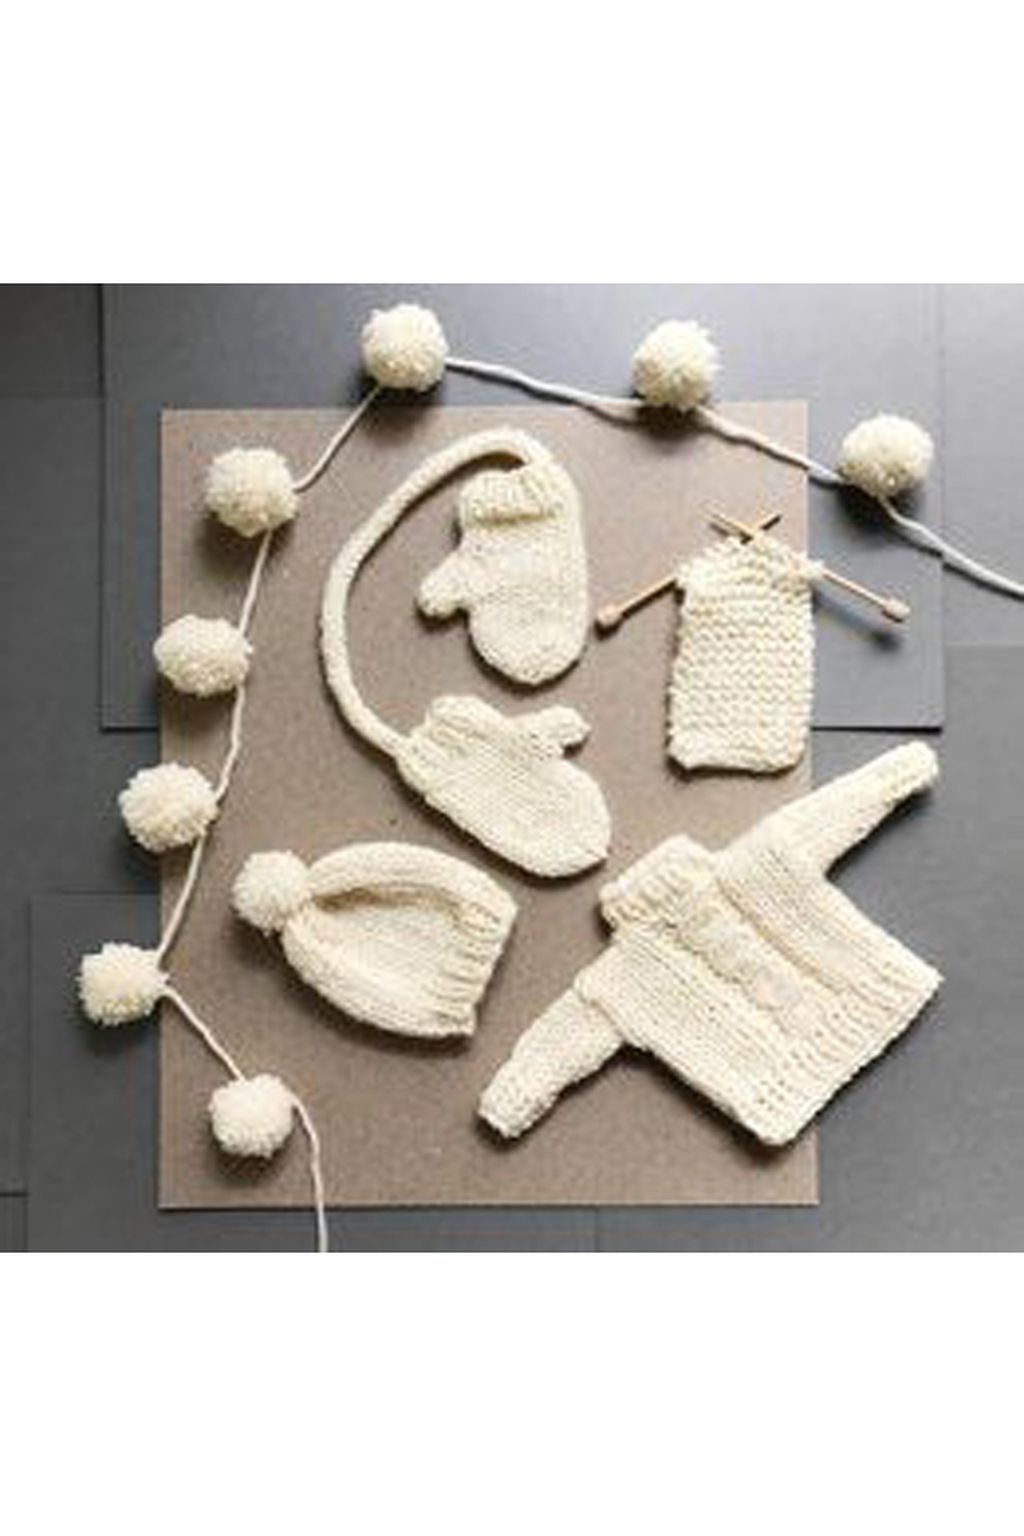 37 Favorite Knitted Winter Decorations Ideas To Try Right Now